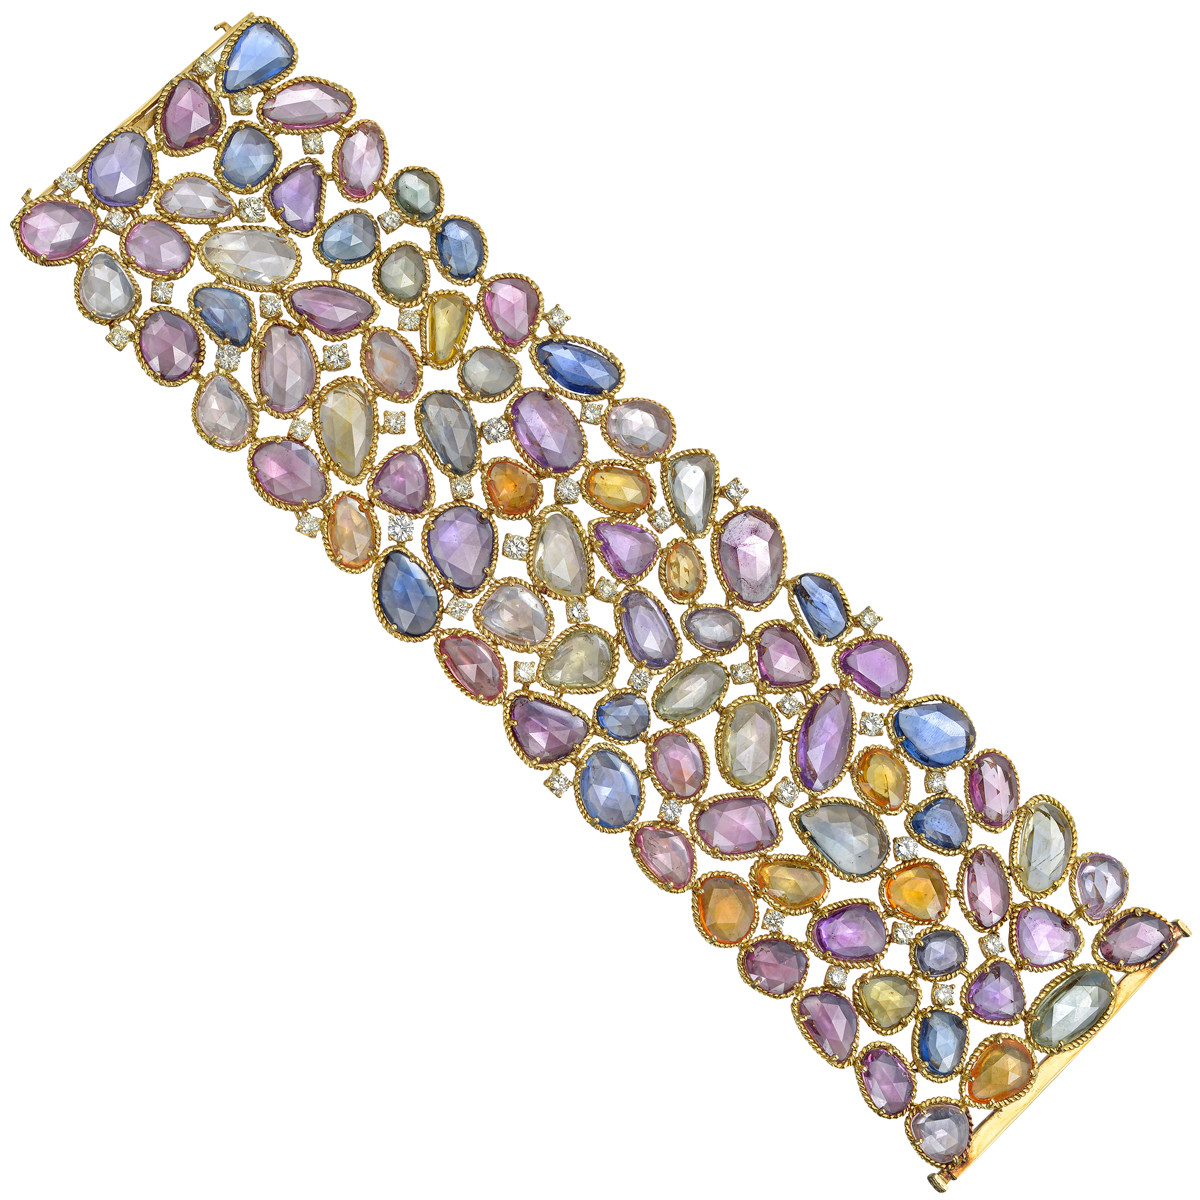 Multicolored Sapphire & Diamond Wide Bracelet